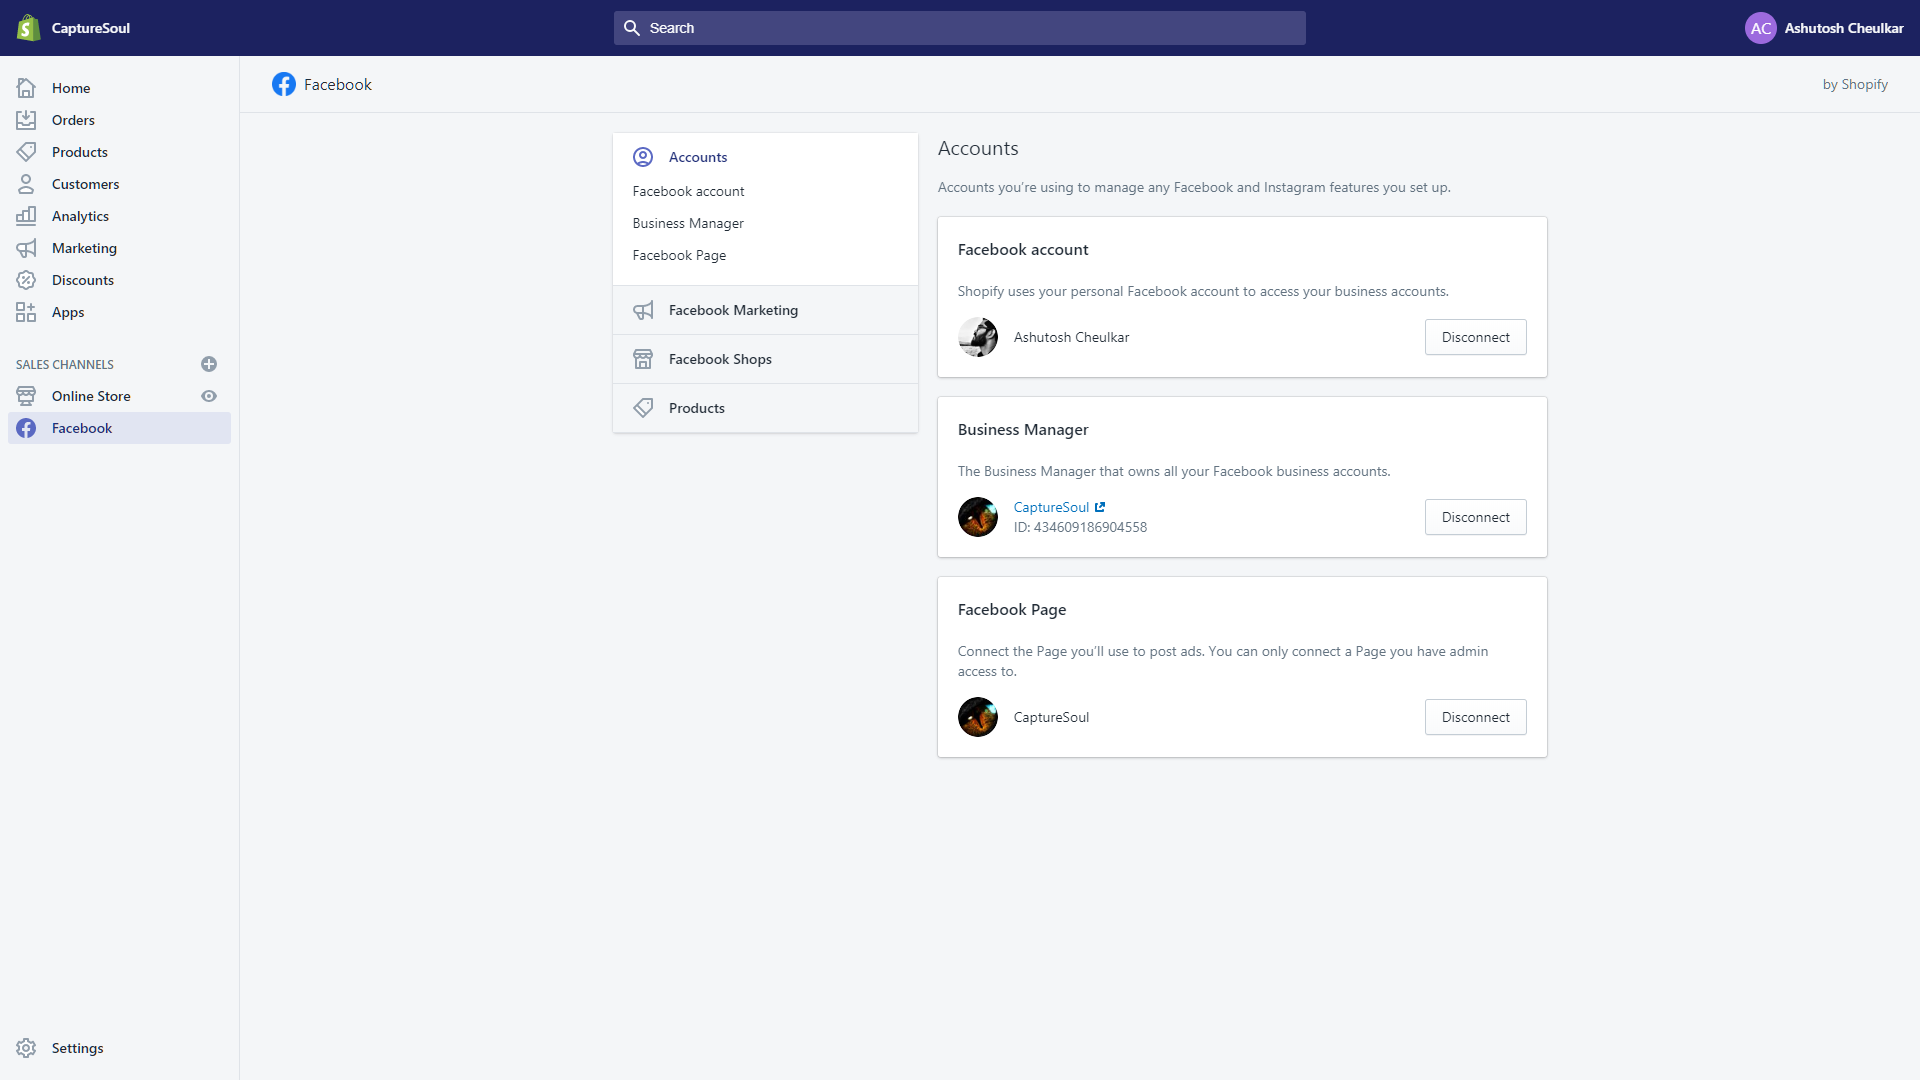 Connect Facebook accounts to Shopify